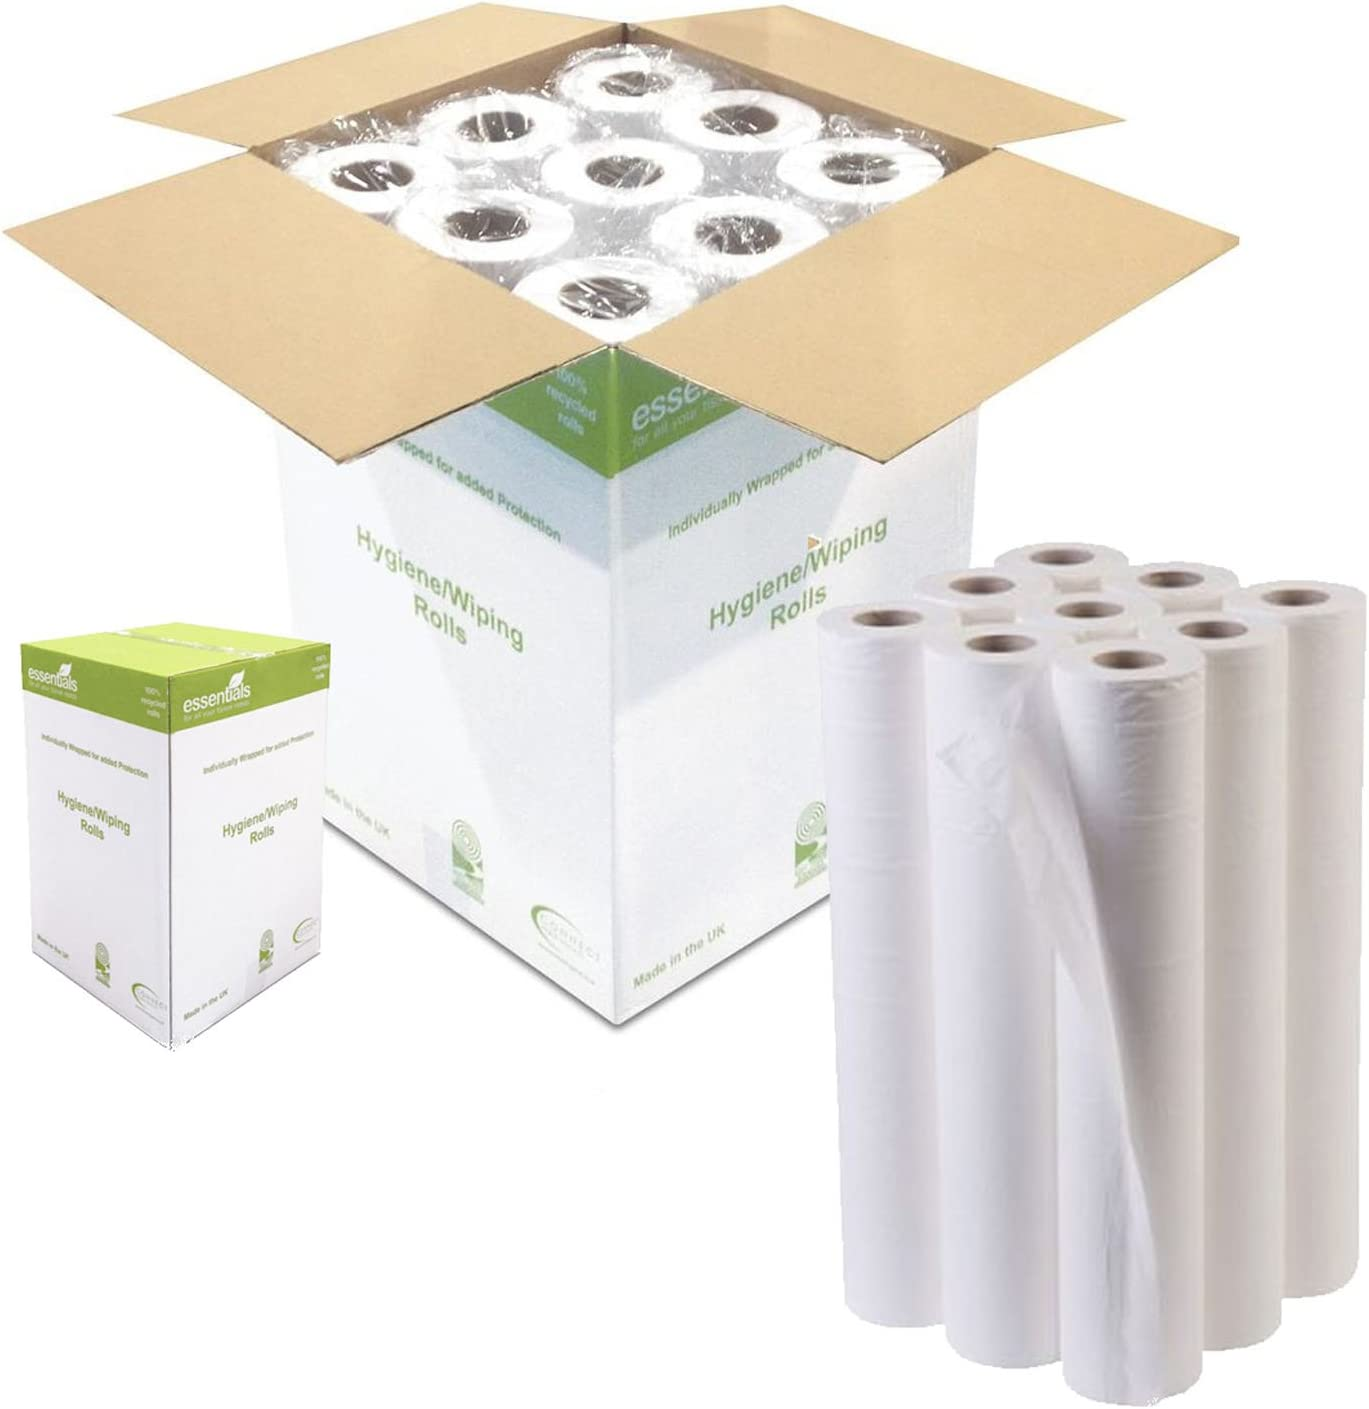 254 & Personal Care: Exam Table Covers